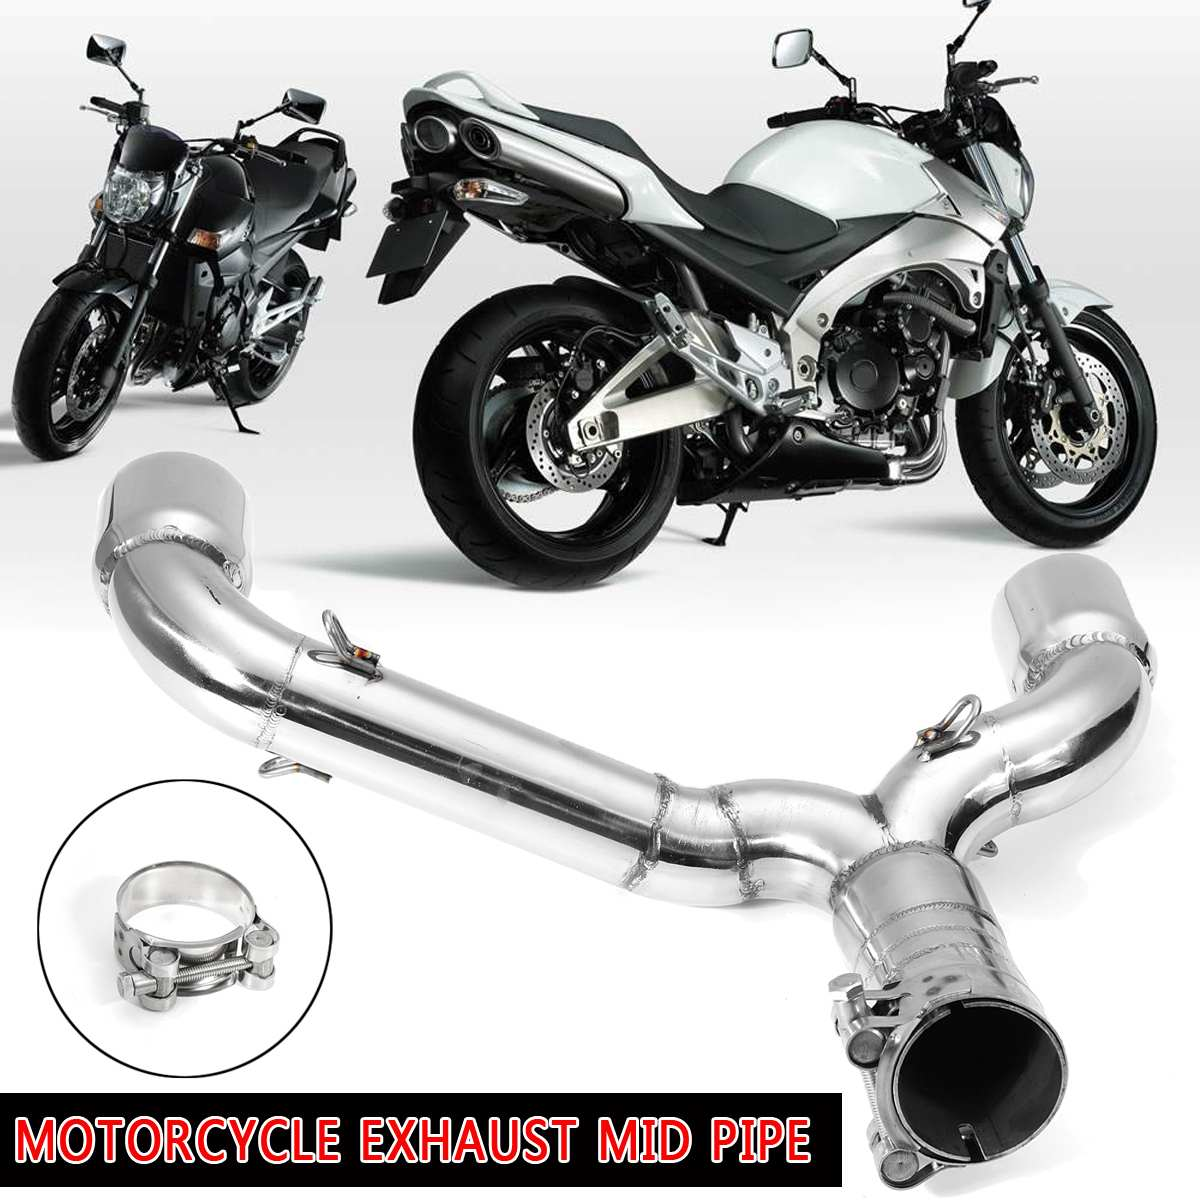 For <font><b>Suzuki</b></font> GSR400 <font><b>GSR600</b></font> BK400 600 Motorcycle <font><b>Exhaust</b></font> Stainless Steel Middle Pipe Muffler Link Adapter Silencer image